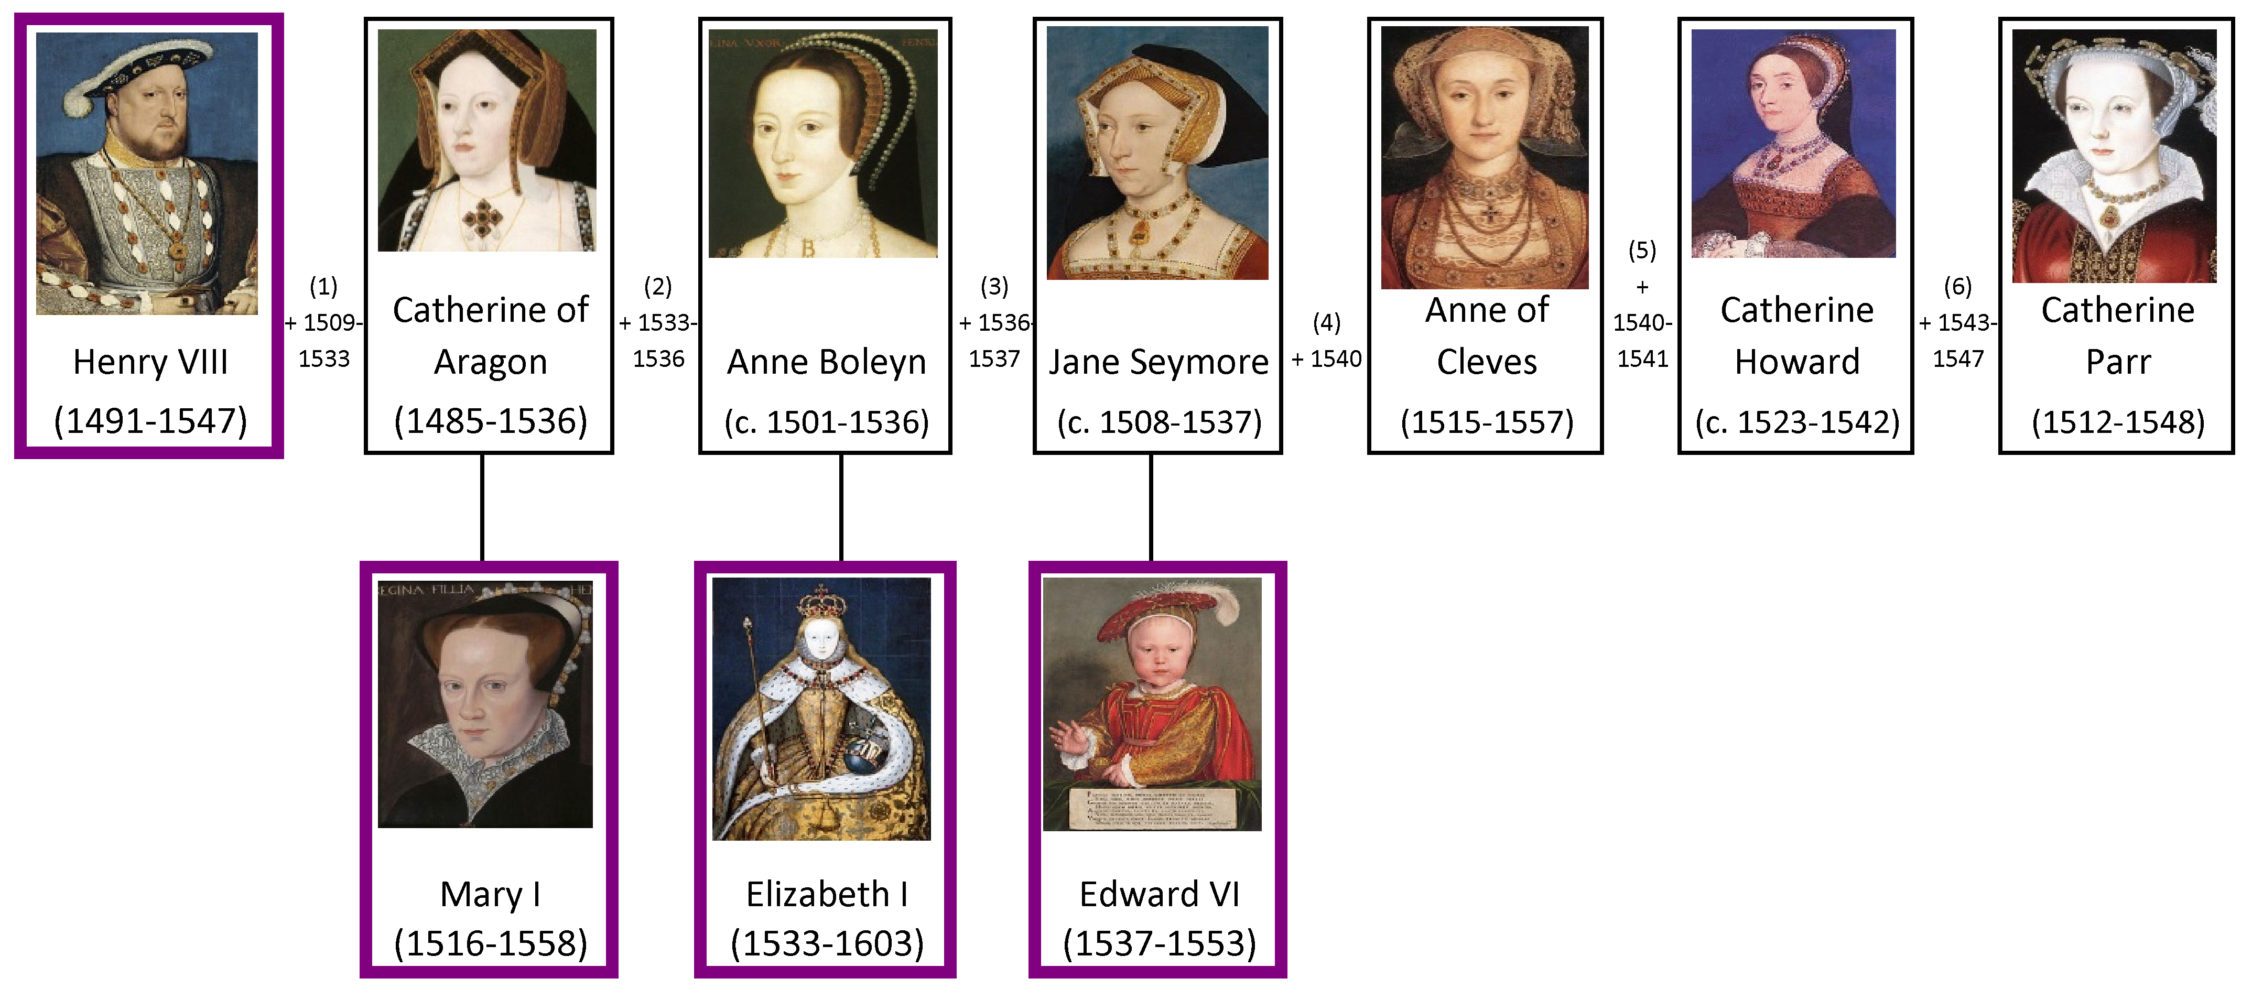 Henry VIII's wives and children